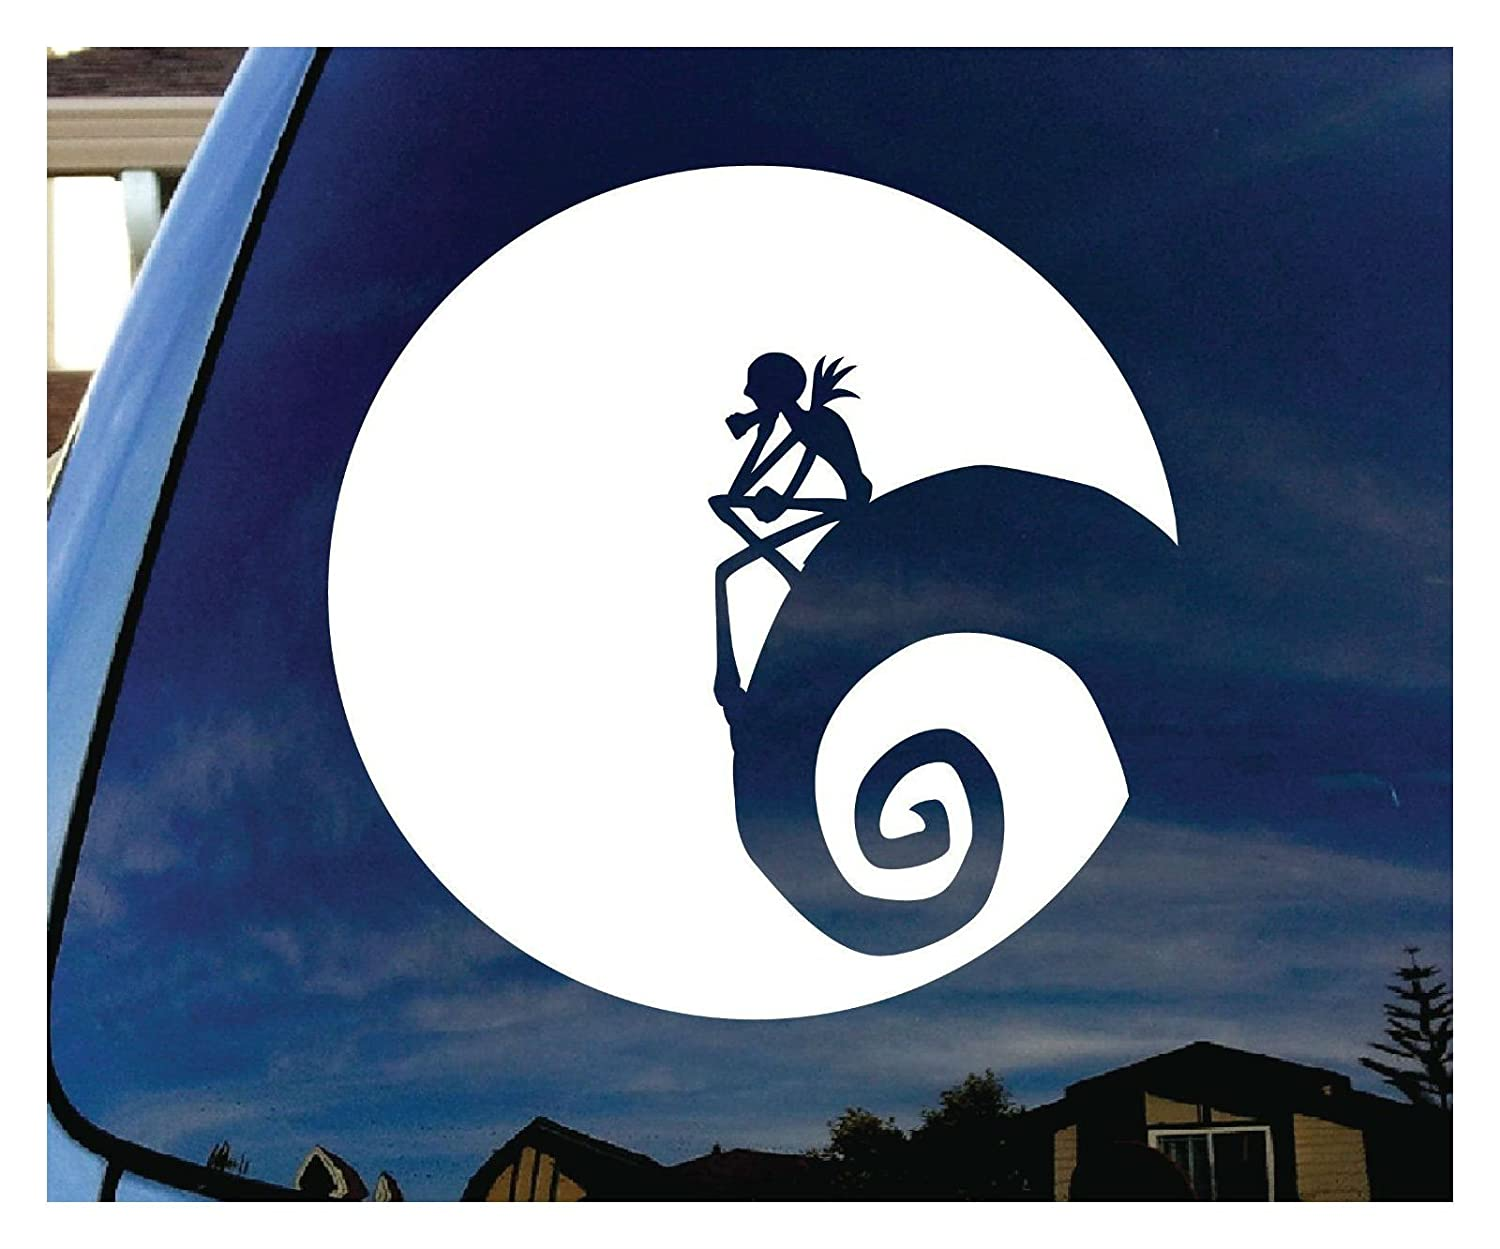 Amazoncom Jack Nightmare Before Christmas Moon Car Window Vinyl - Vinyl window decals amazon